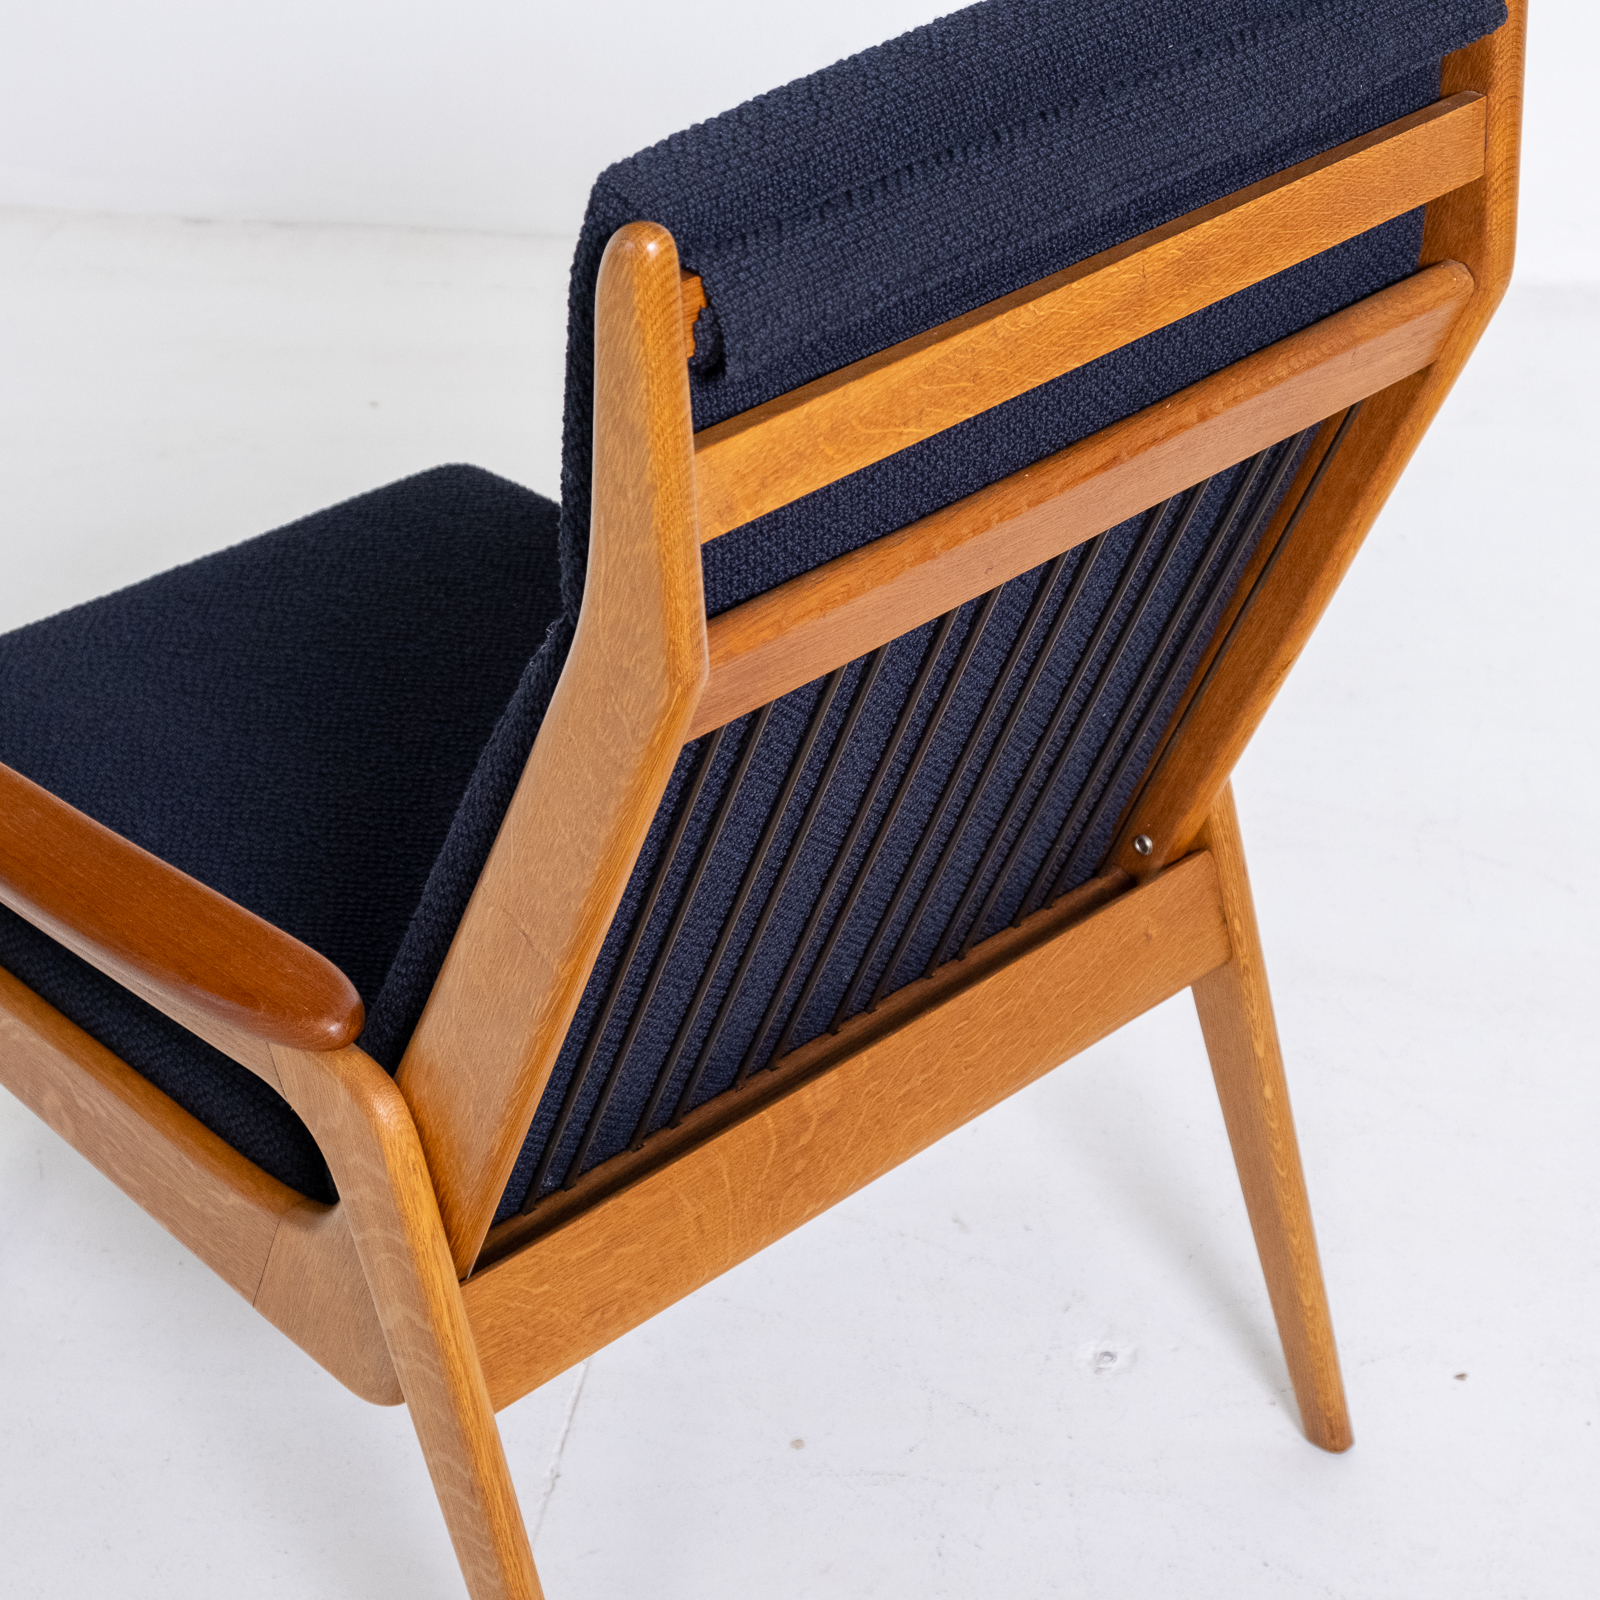 Lotus Armchair By Rob Parry For De Ster Gelderland, 1950s, The Netherlands 02